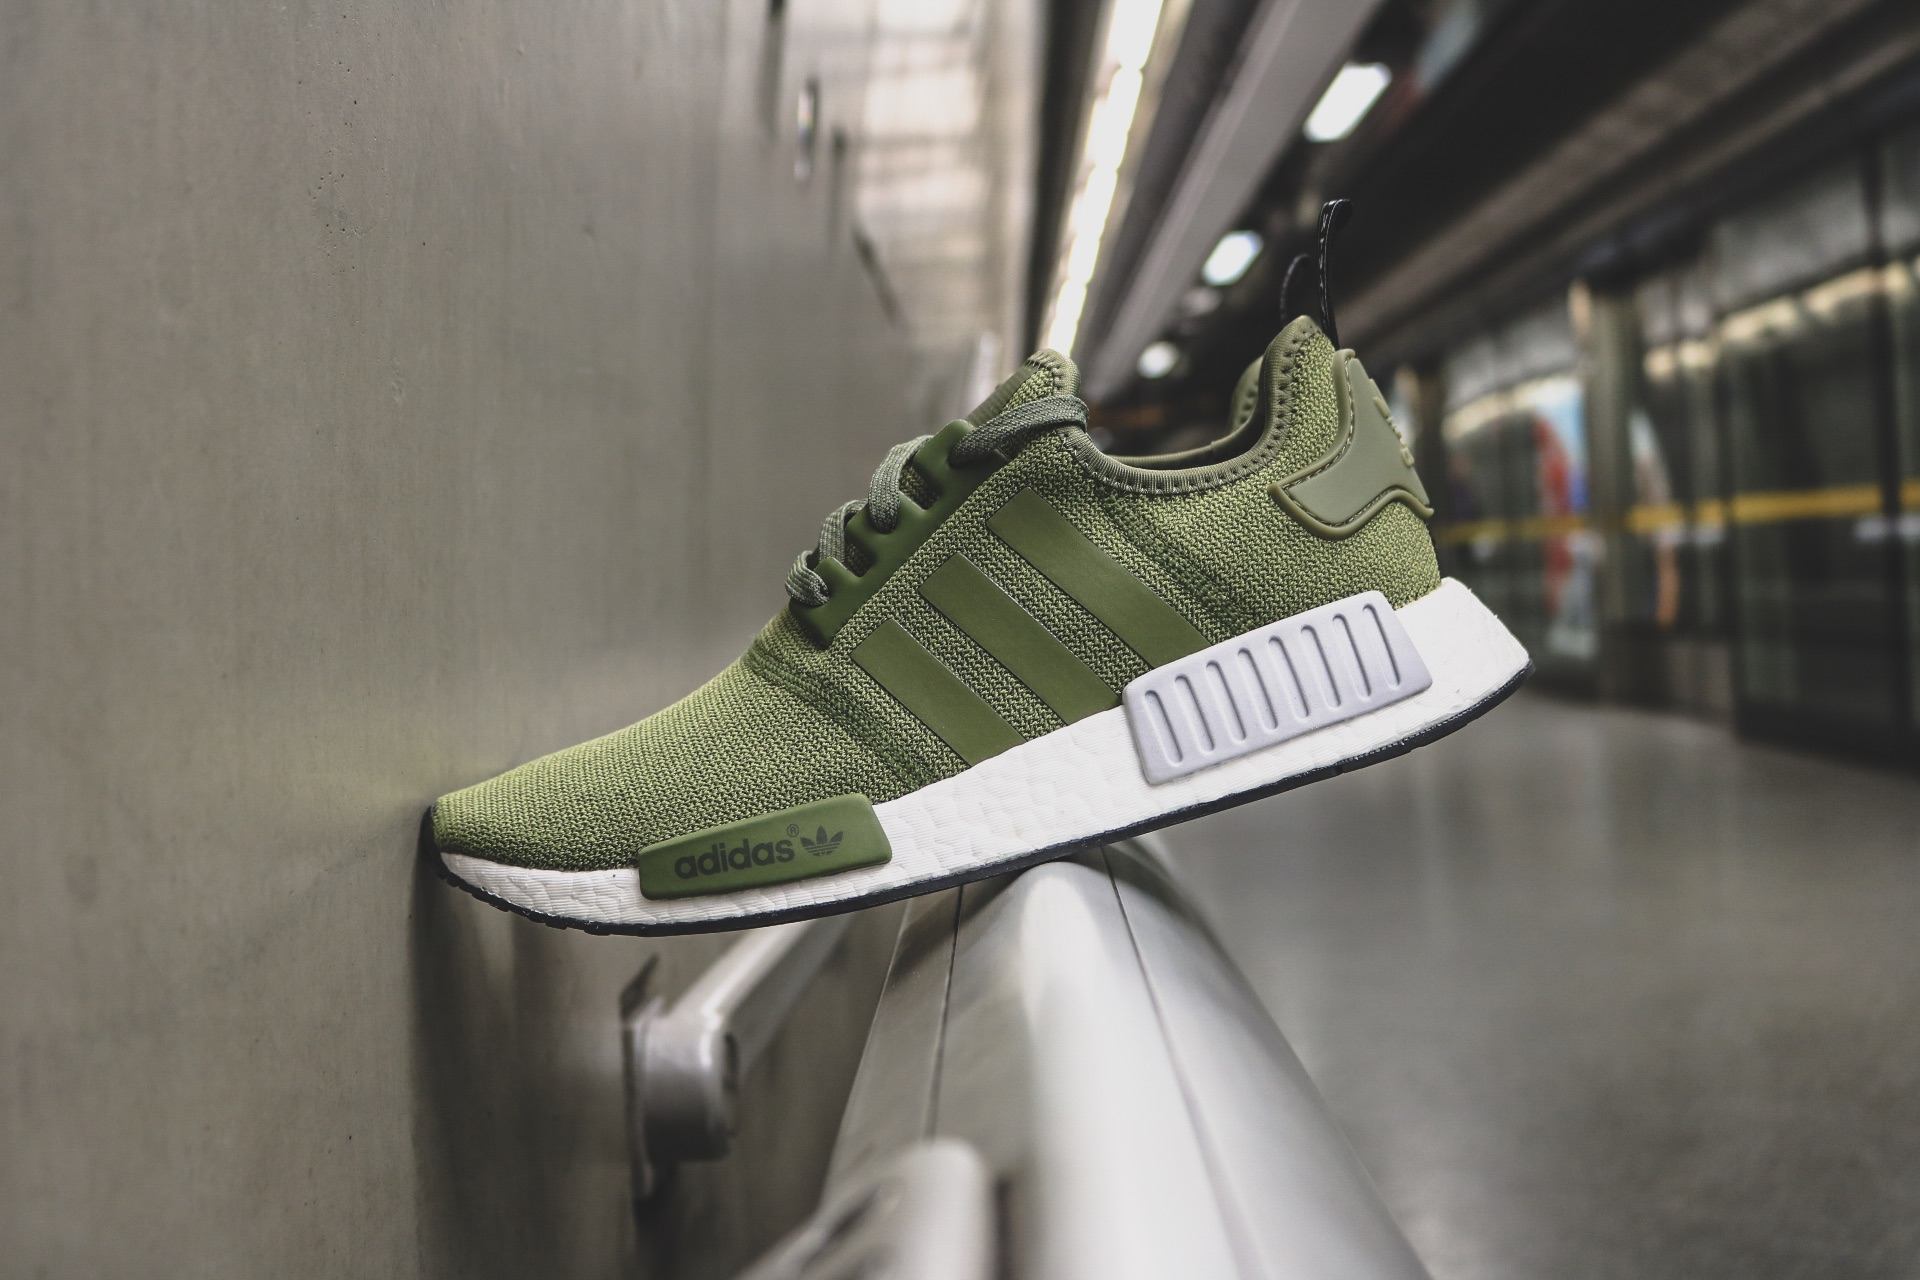 outlet store f1302 b08ee Cheap NMD R1 Shoes for Sale, Buy Adidas NMD R1 Boost Online 2018